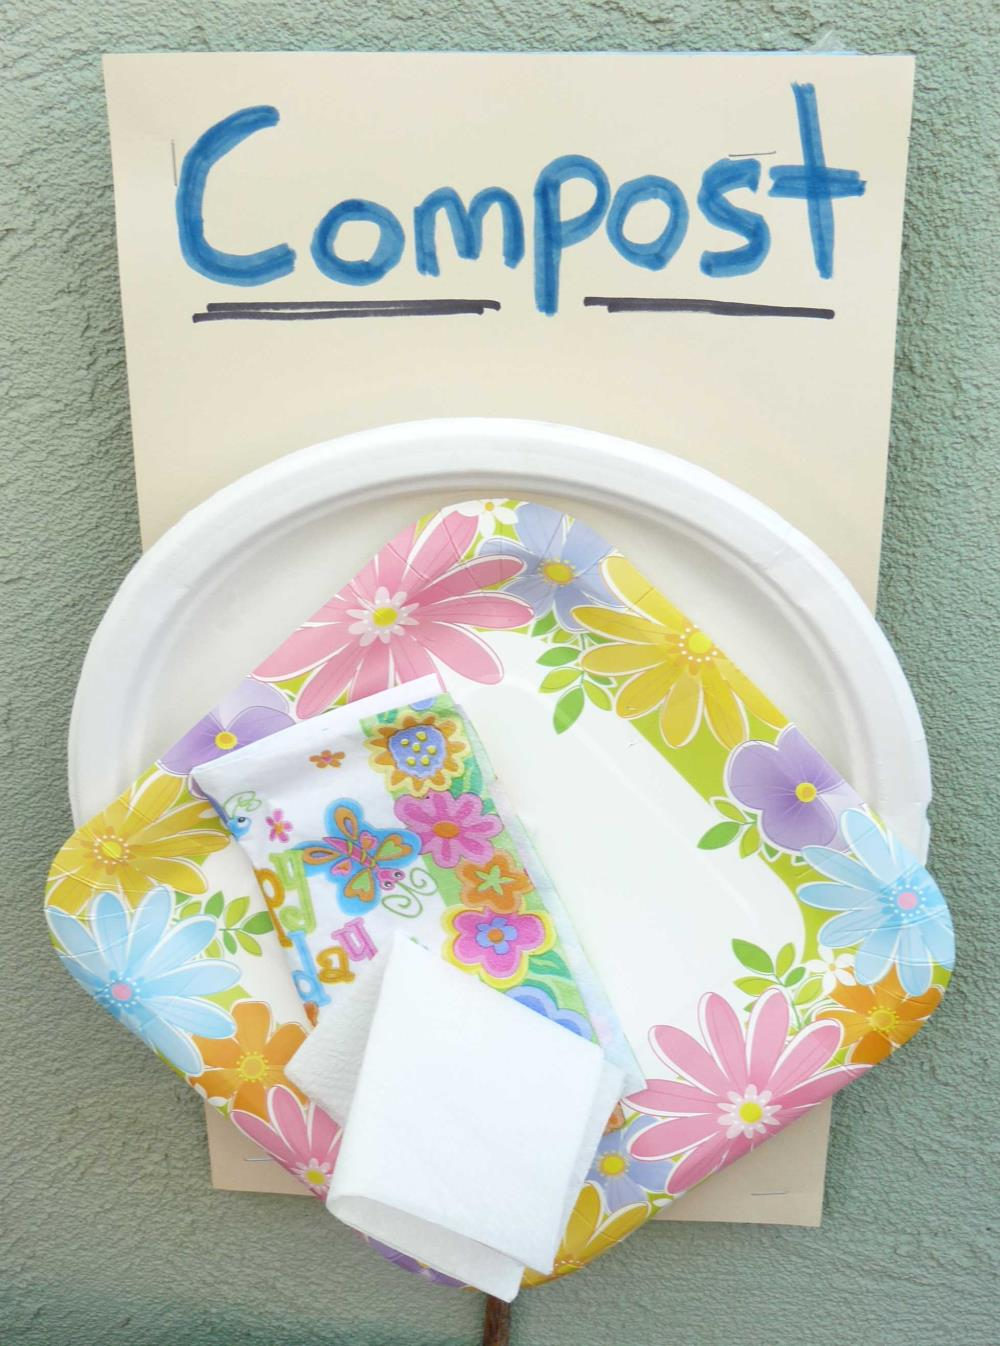 compost_sign